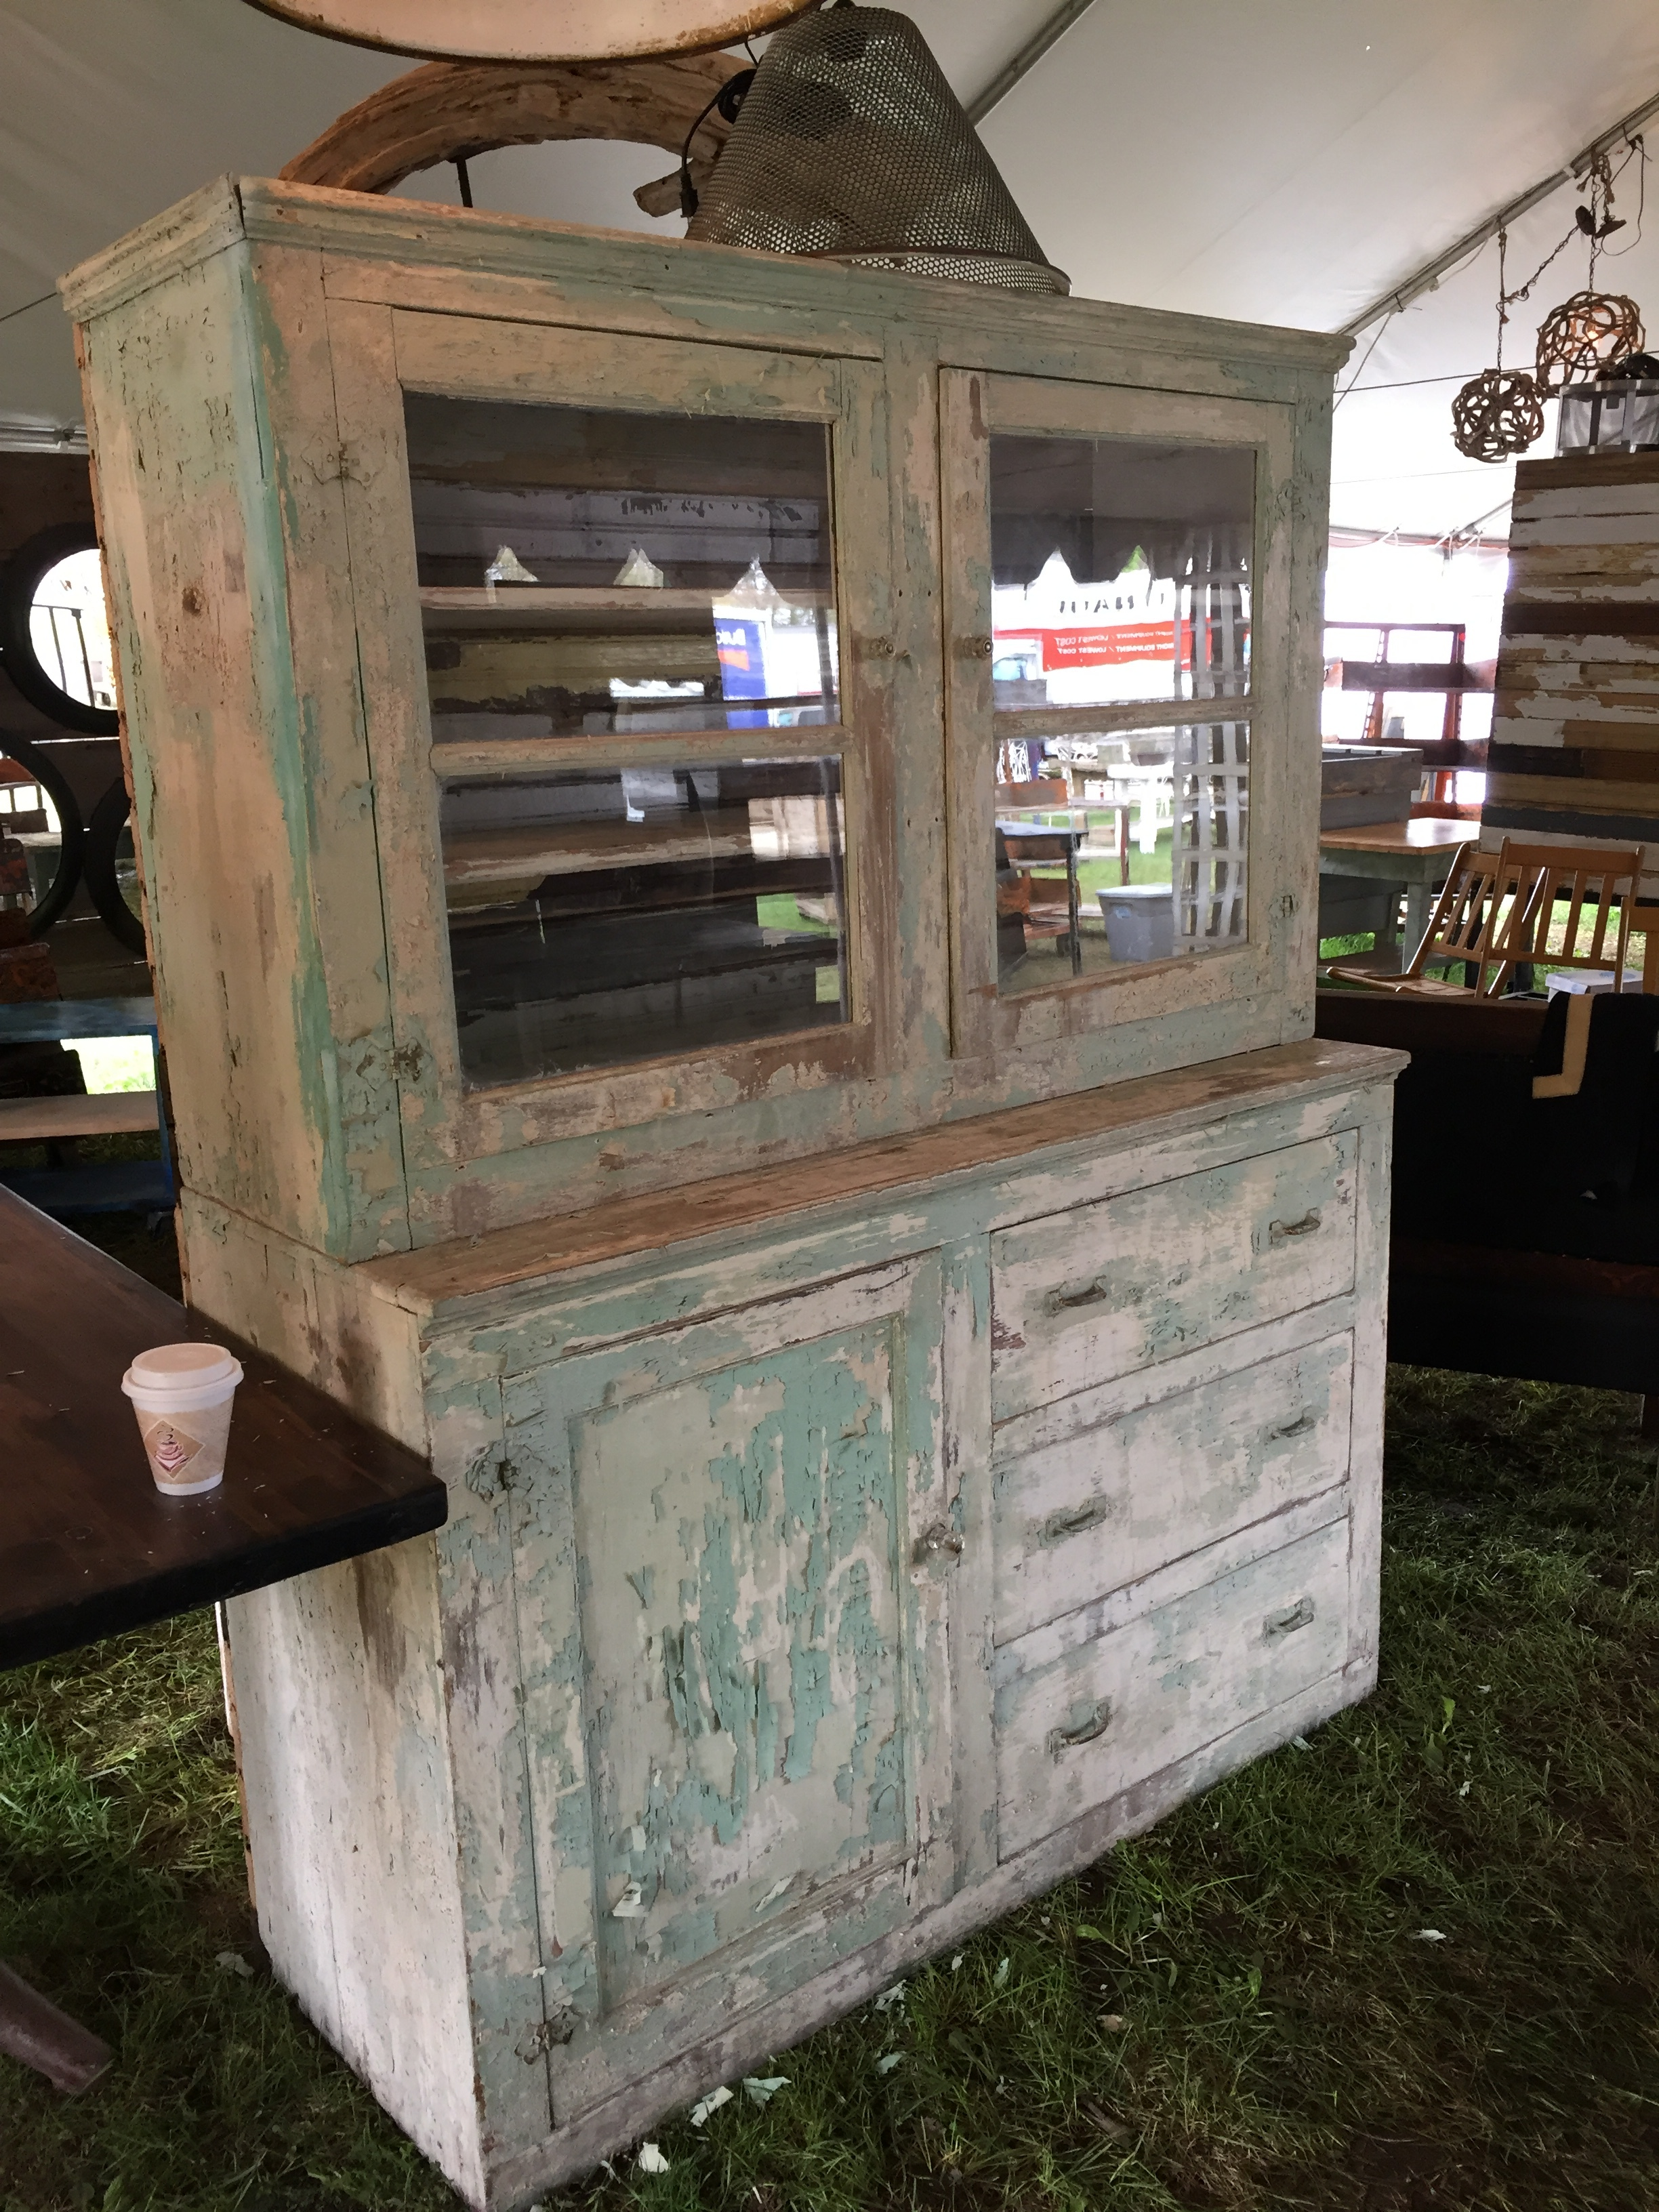 I was eyeing this old china cabinet for a client of mine, but the paint was really chipping and funky and I was worried about lead (she has two little kids)...so sadly this stayed behind.